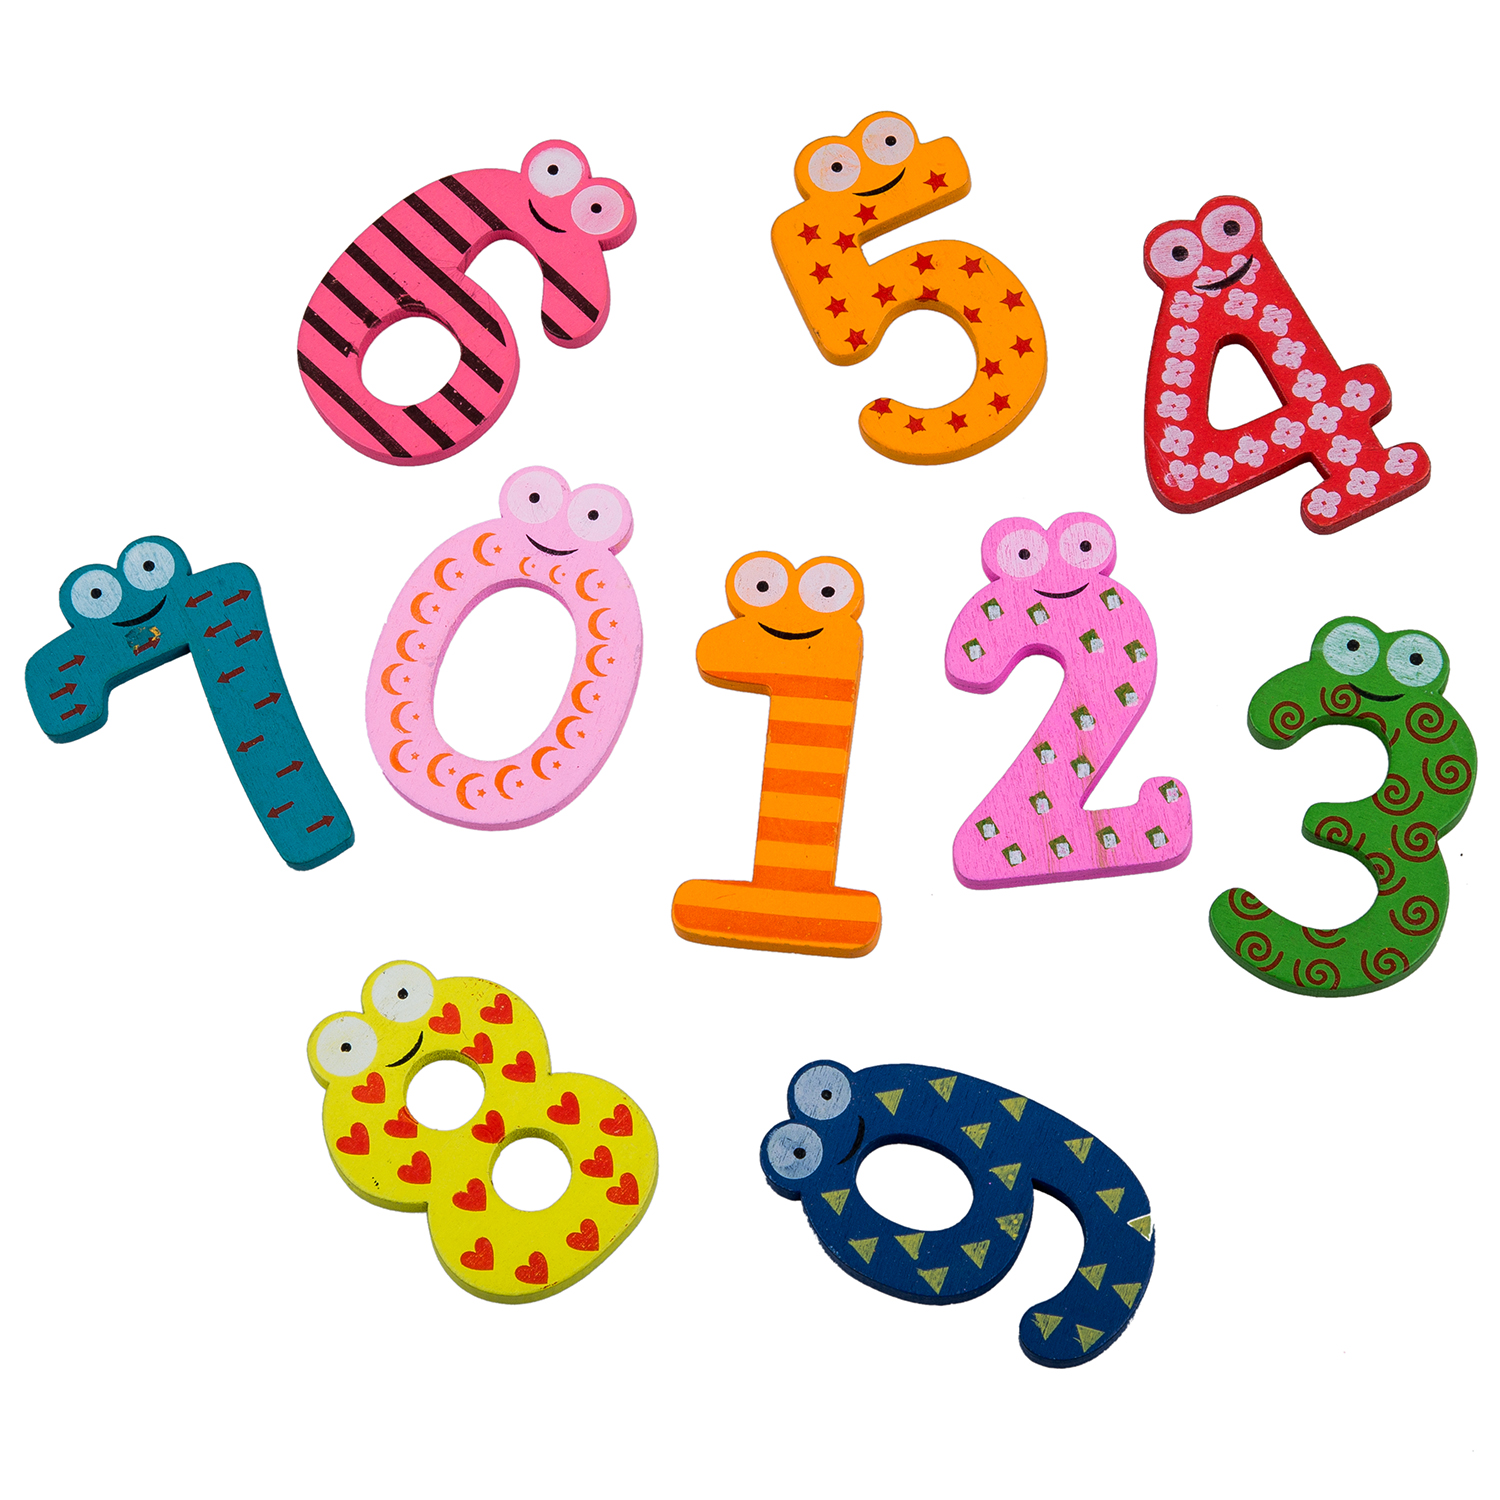 New Colourful Wooden Magnetic Numbers Fridge Magnet Toy NUMBERS Educational Math Toy